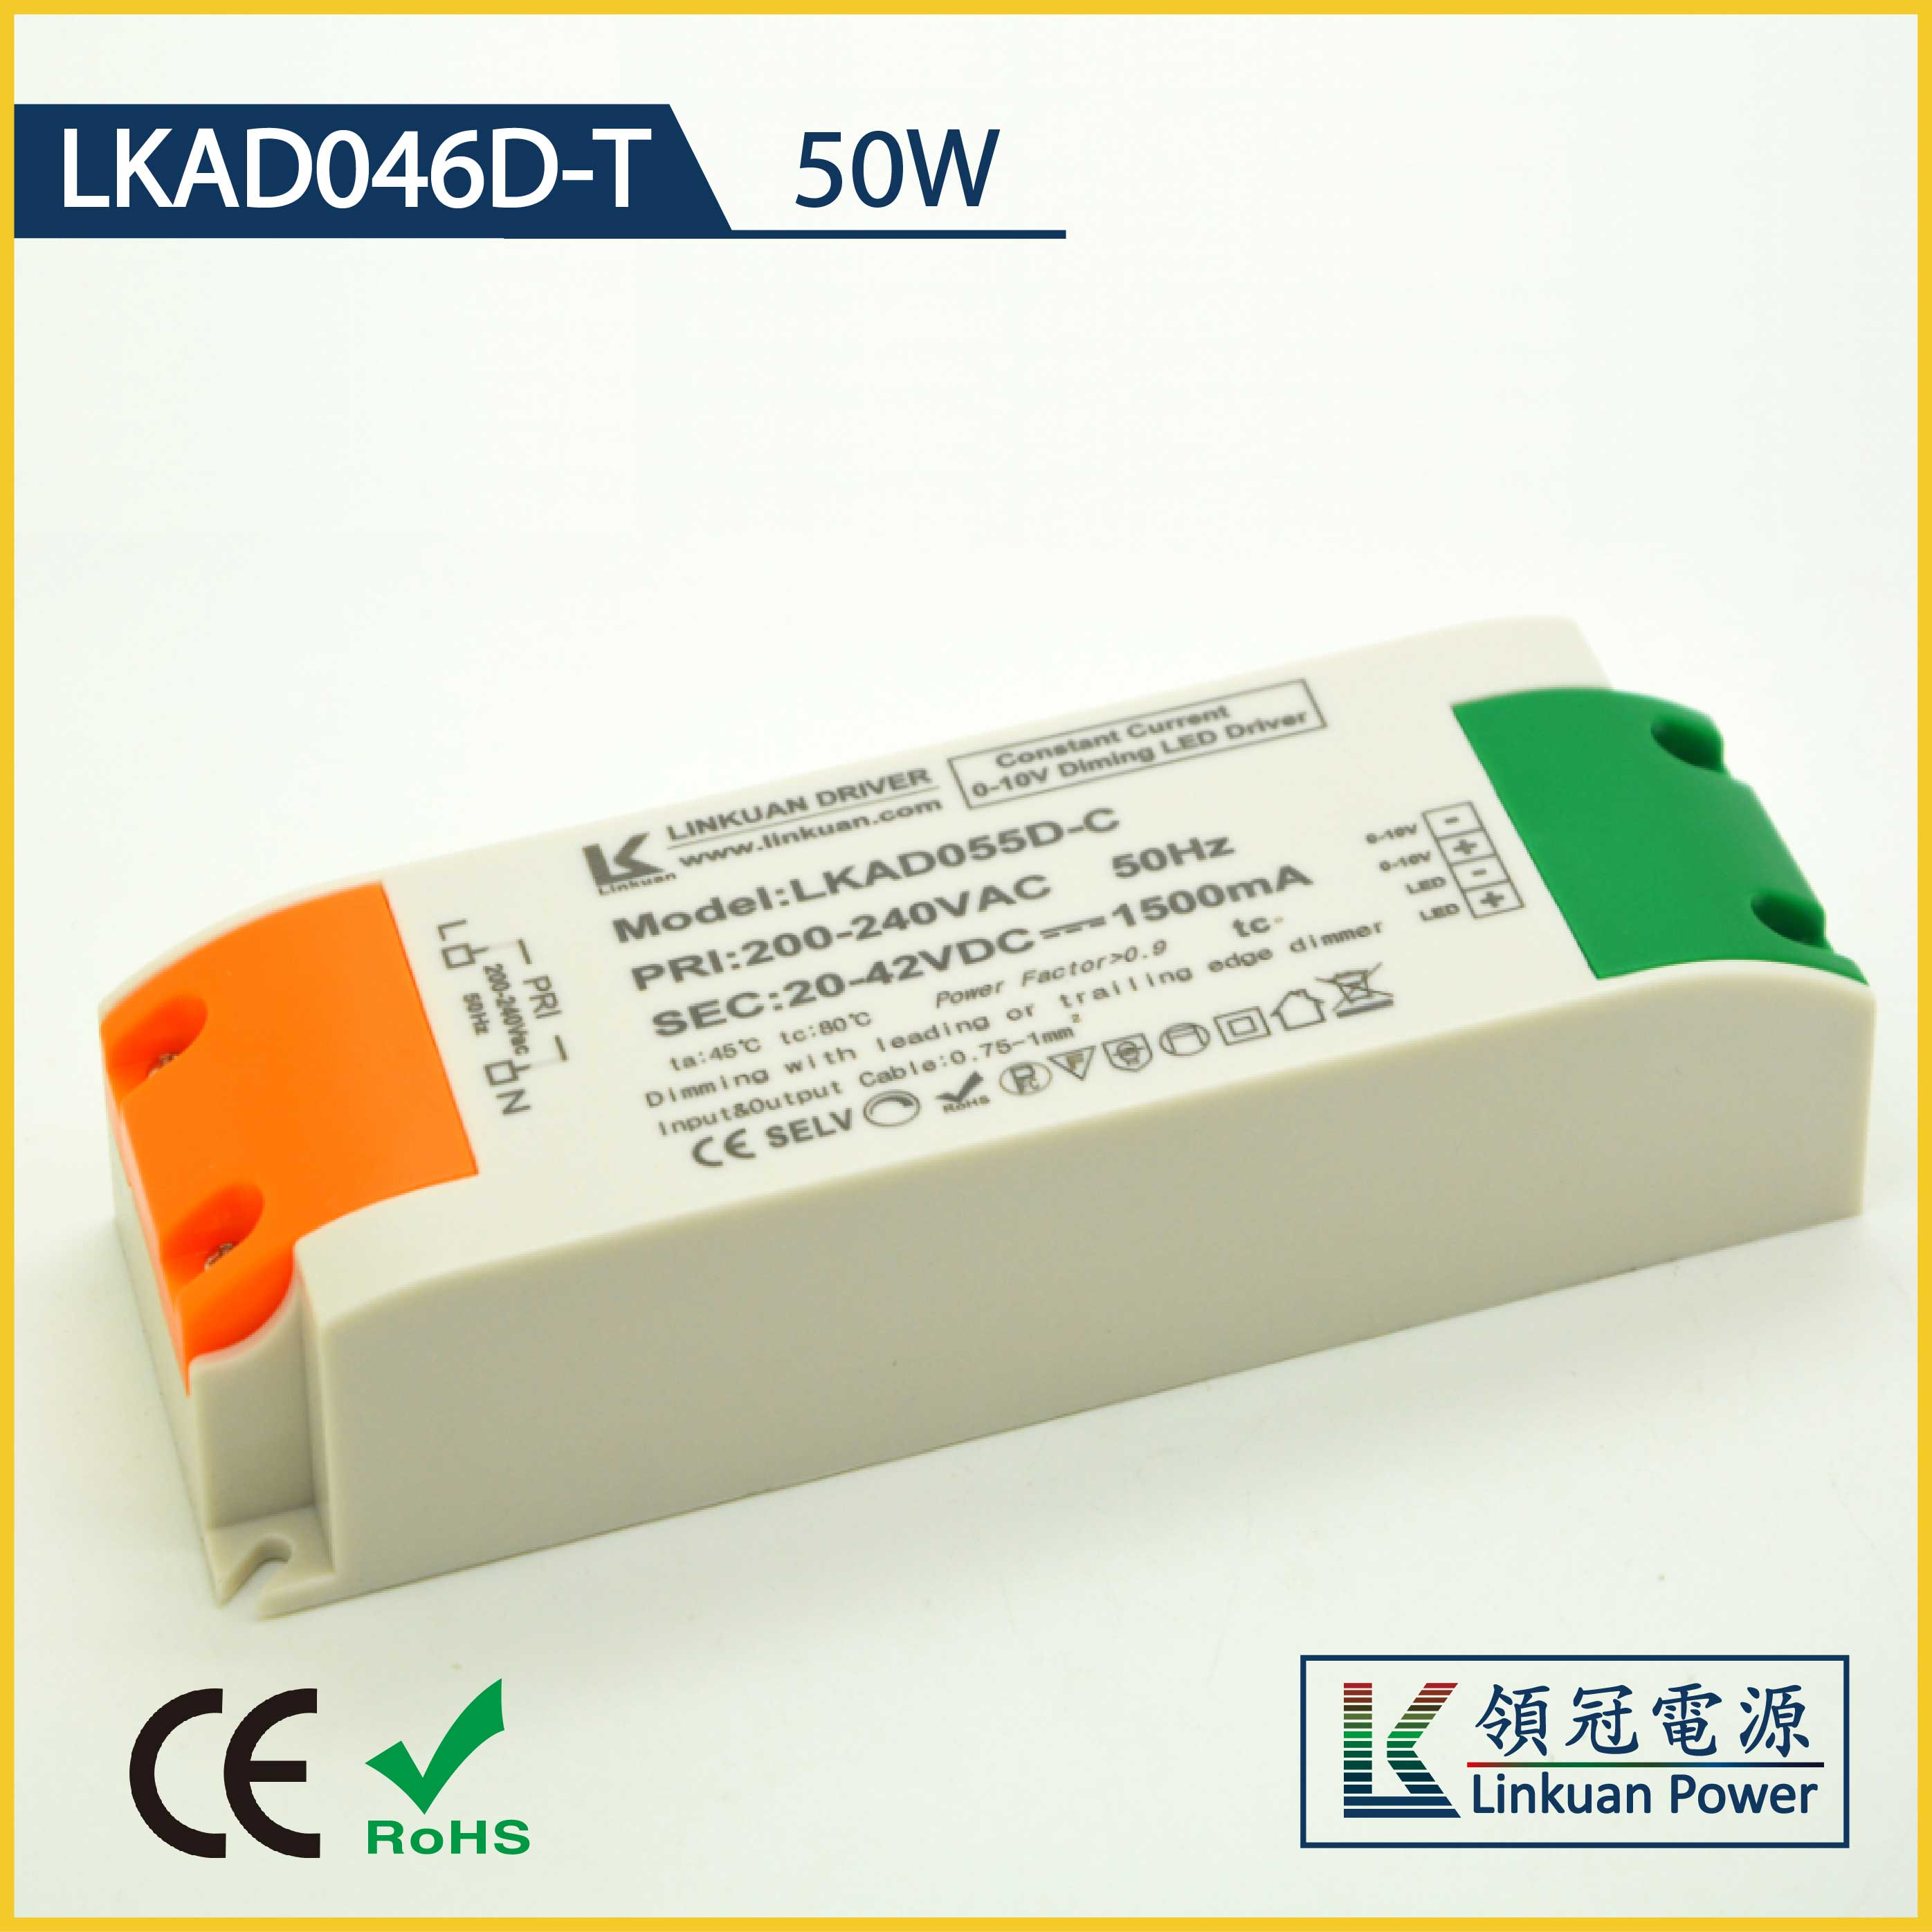 LKAD046D-T 50W 10-42V 1200mA triac dimmable led driver with DIP switch